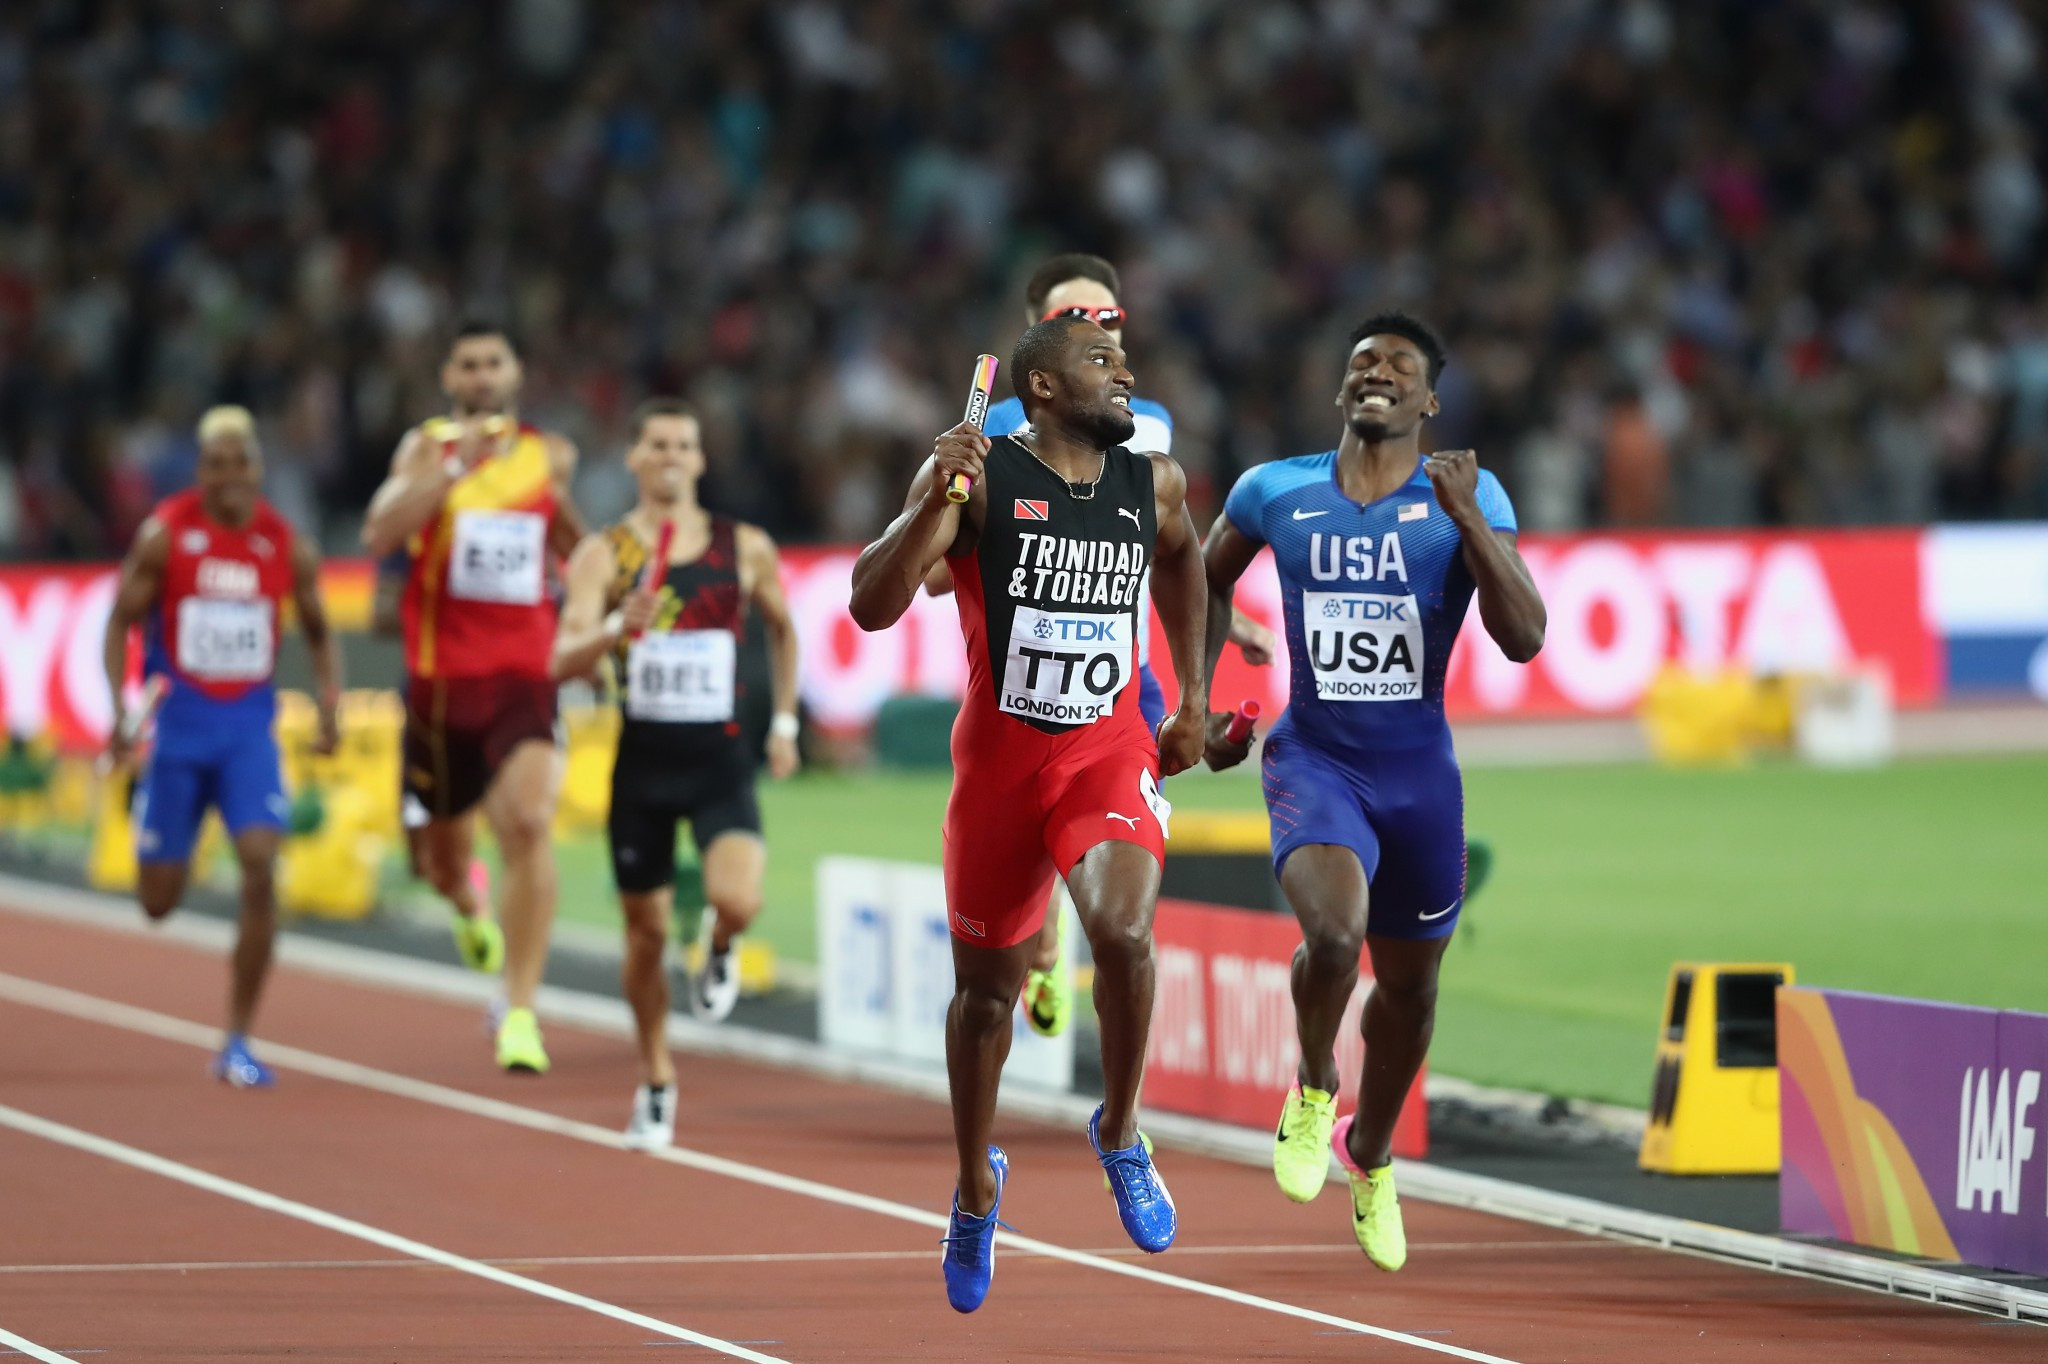 Trinidad and Tobago stunned the United States in the men's 4x400m relay to claim the last gold medal of the Championships ®Getty Images